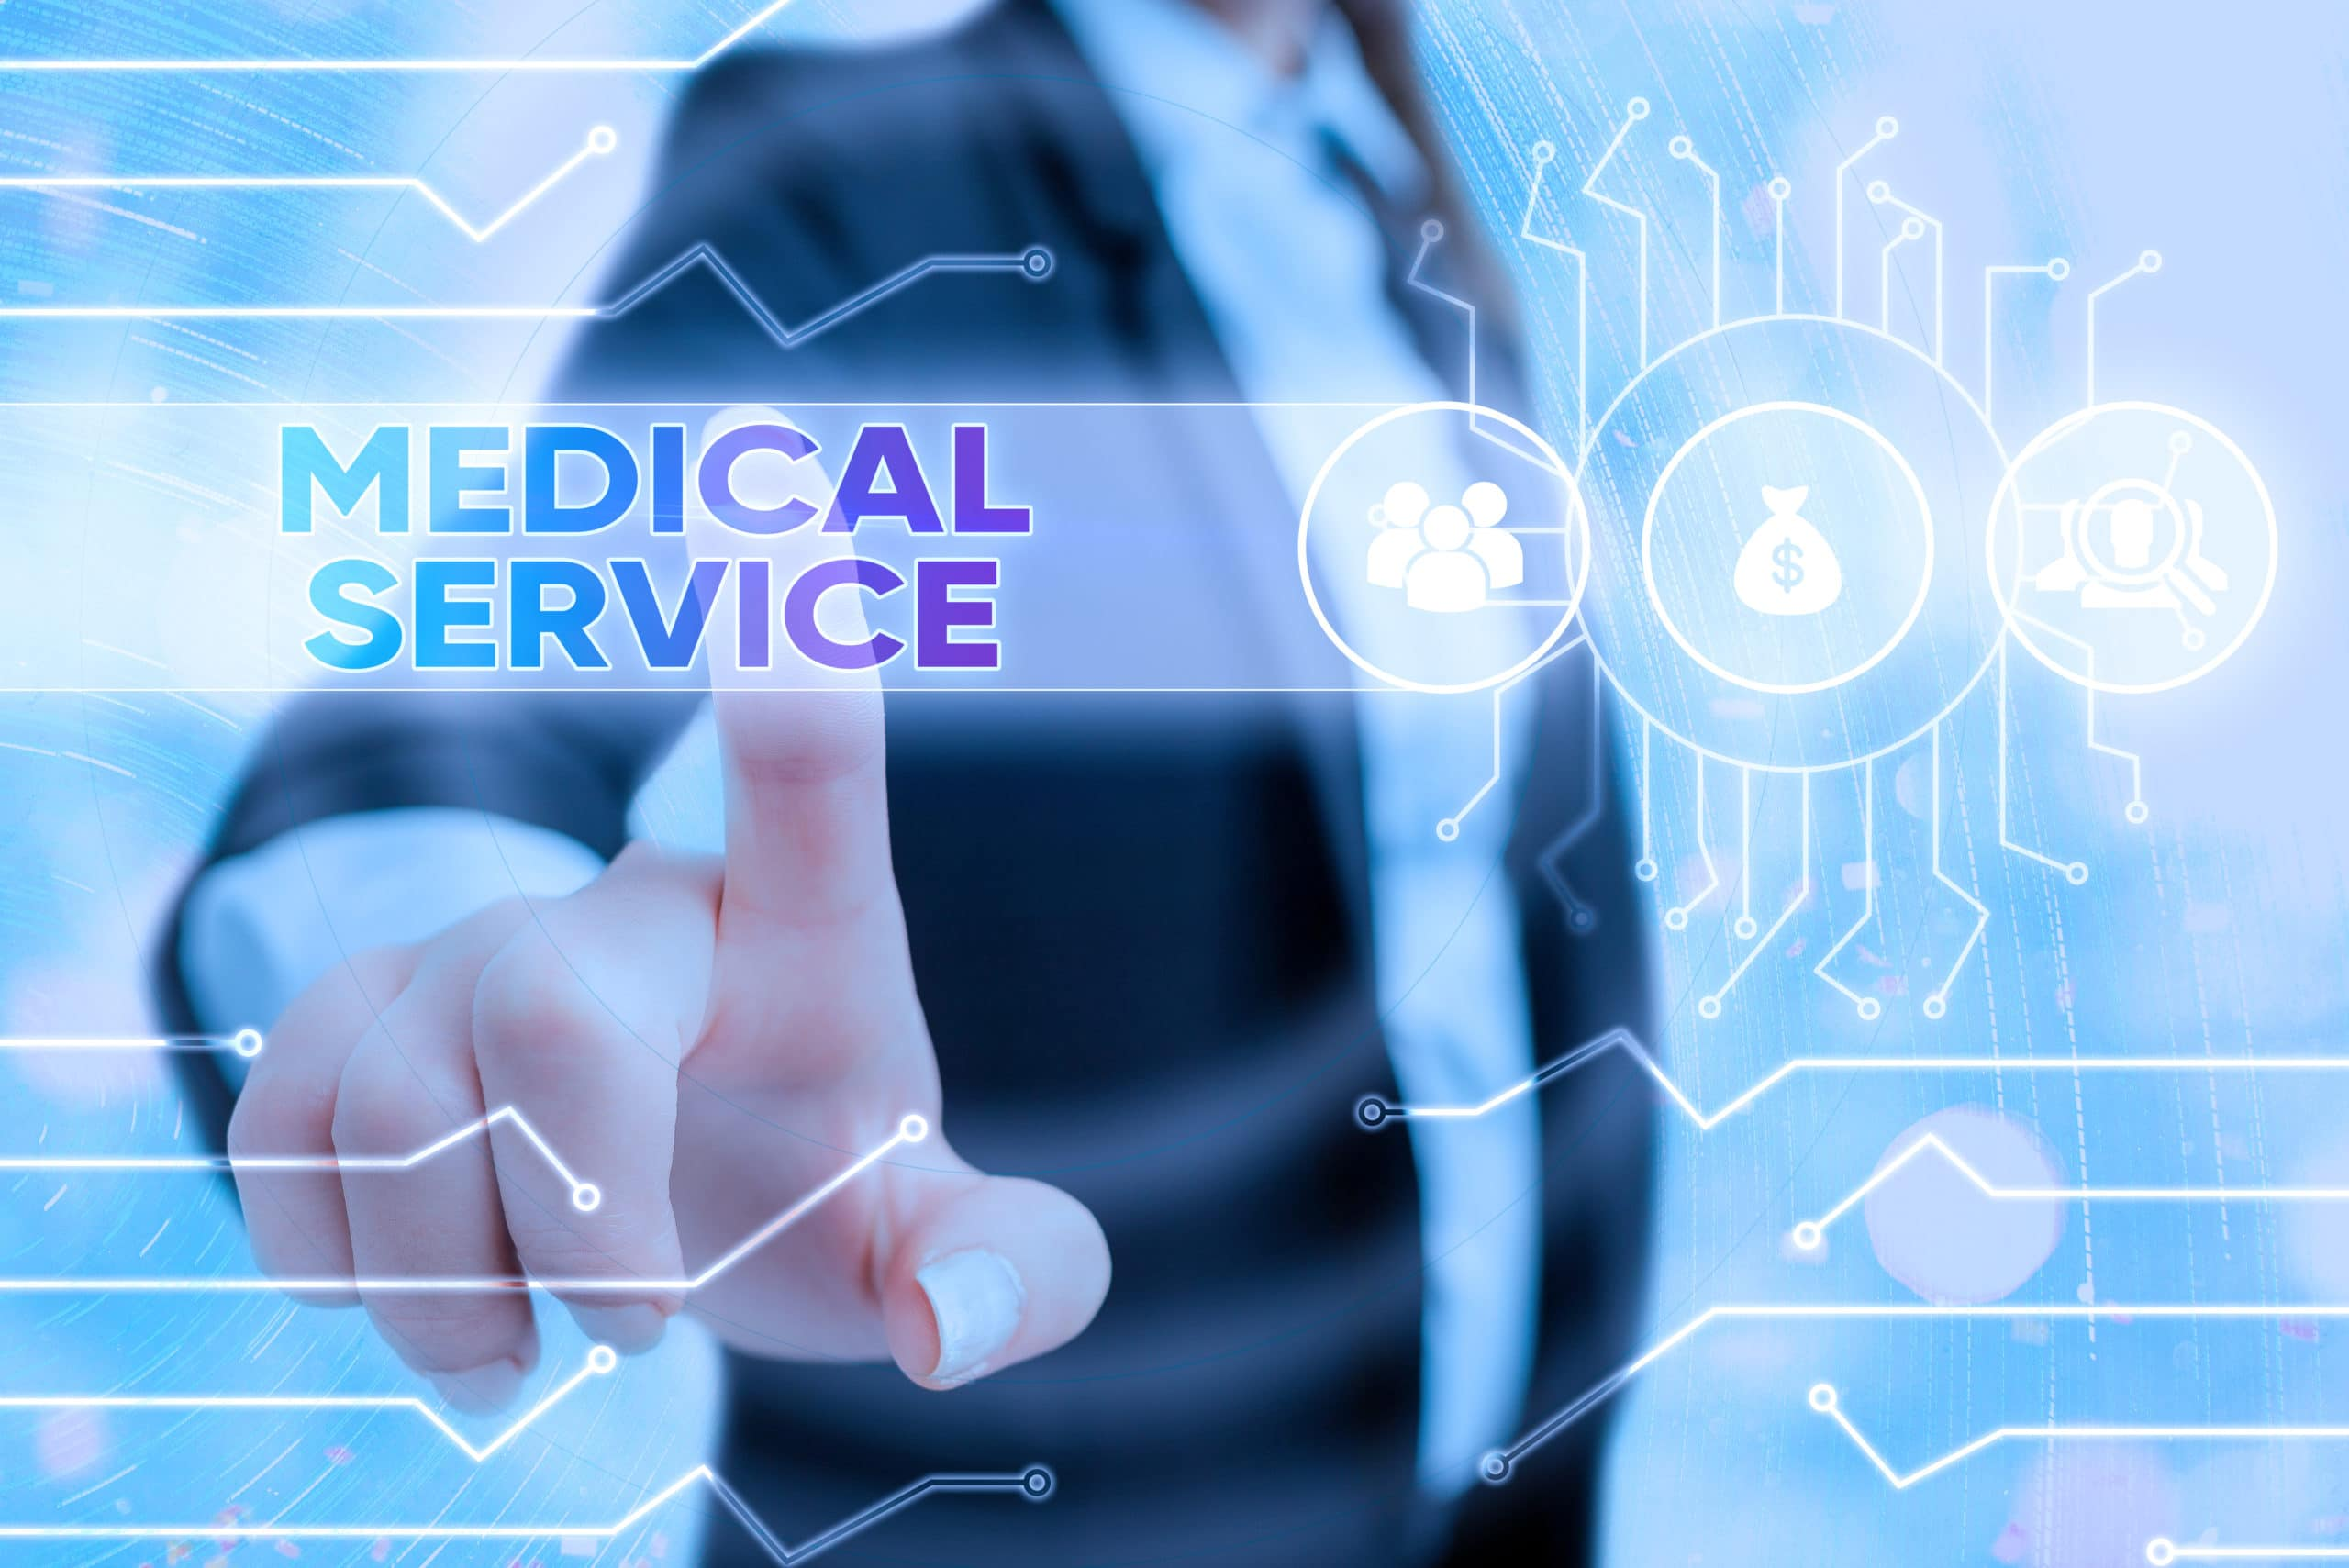 Writing note showing Medical Service. Business photo showcasing care and treatment provided by a licensed medical provider System administrator control, gear configuration settings tools concept.